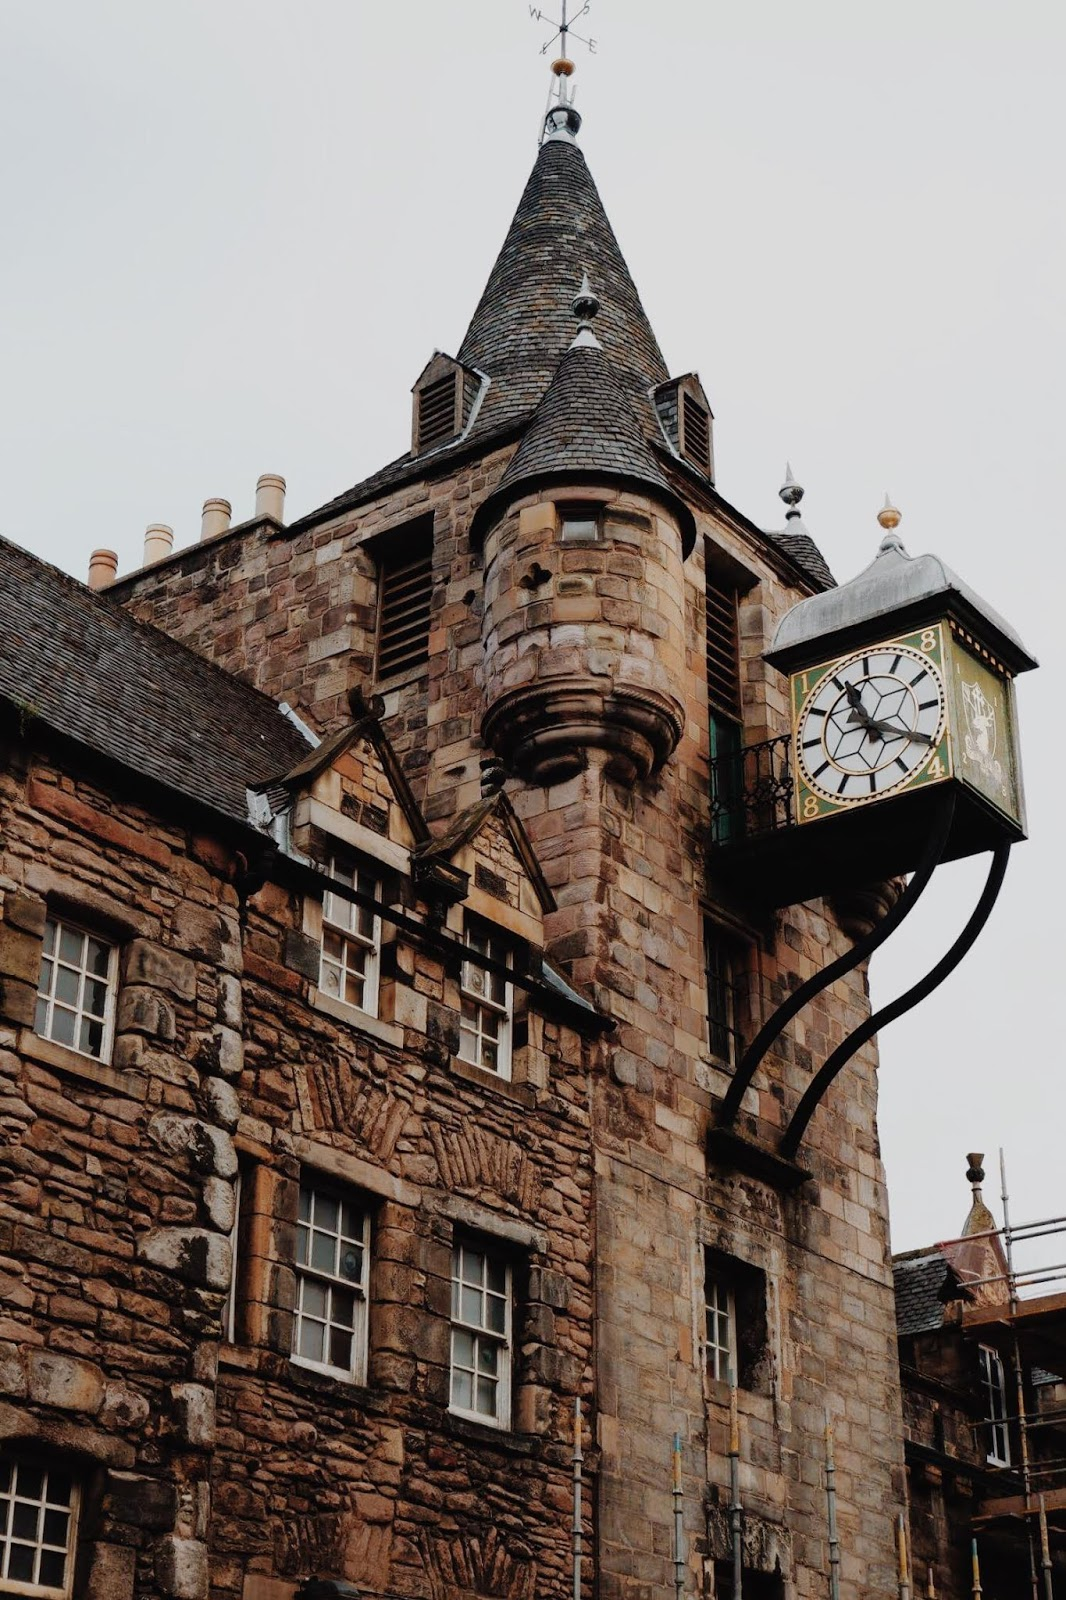 The Tolbooth building with clock tower which houses the People's Story Museum